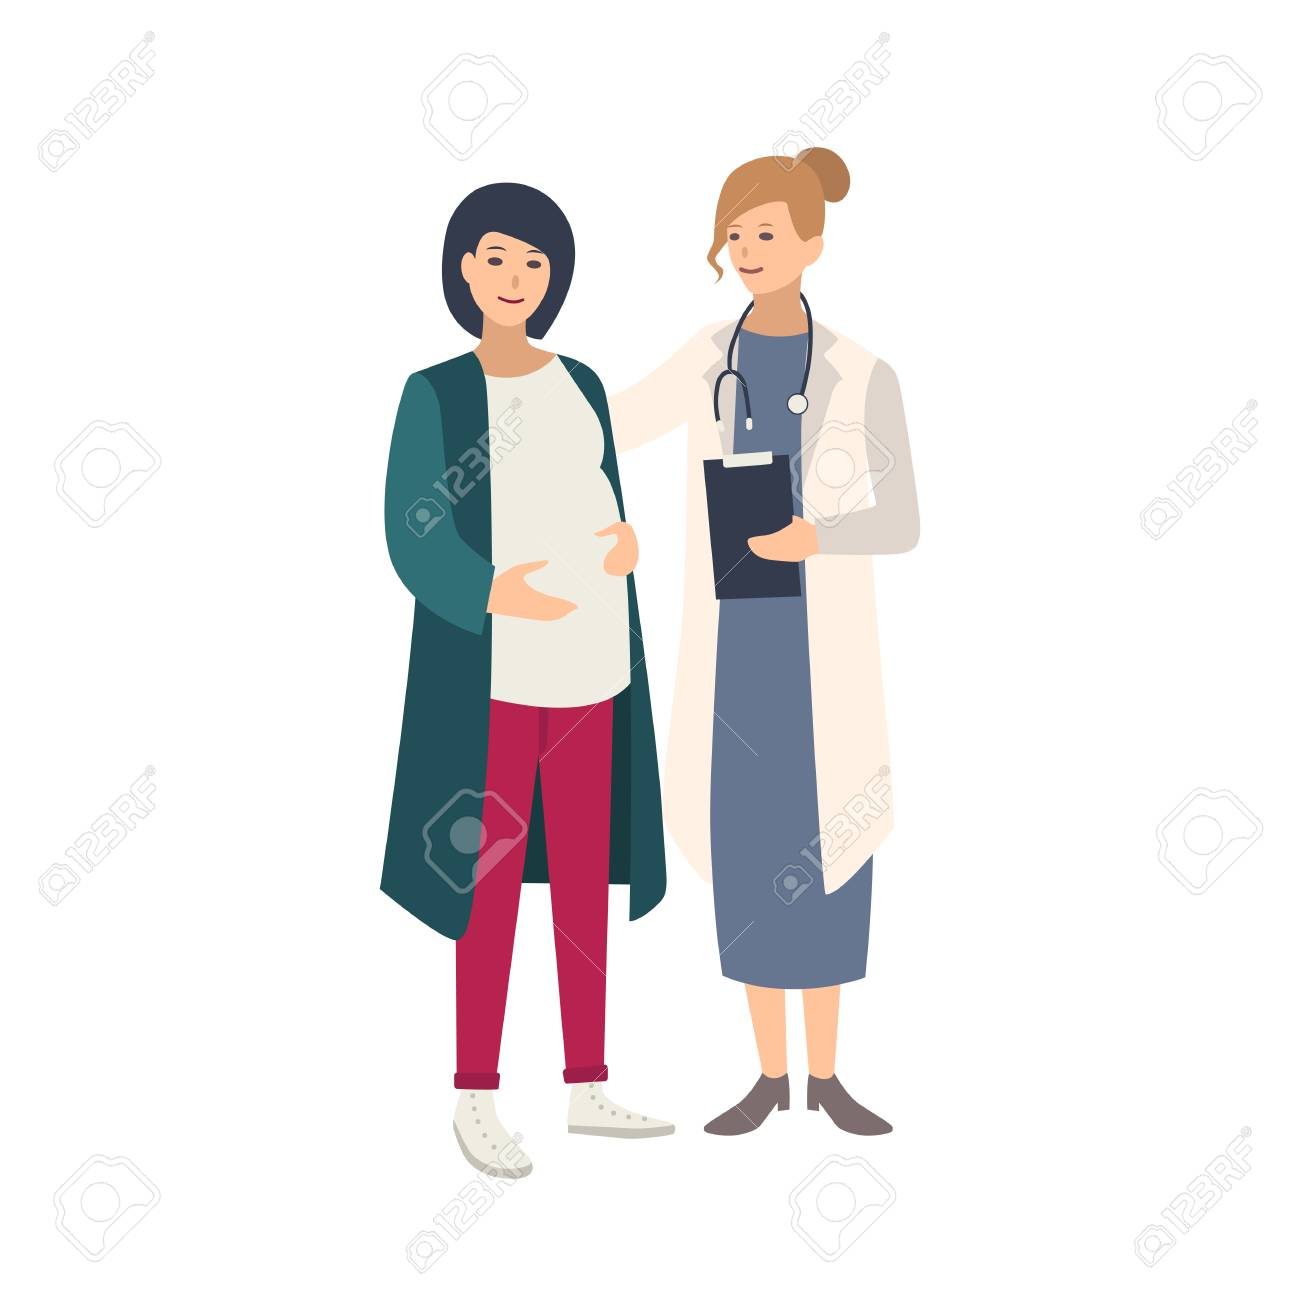 Cheerful pregnant woman standing together with female doctor, physician or midwife and talking to her. Healthy pregnancy, reproductive health. Colorful vector illustration in flat cartoon style - 112027509